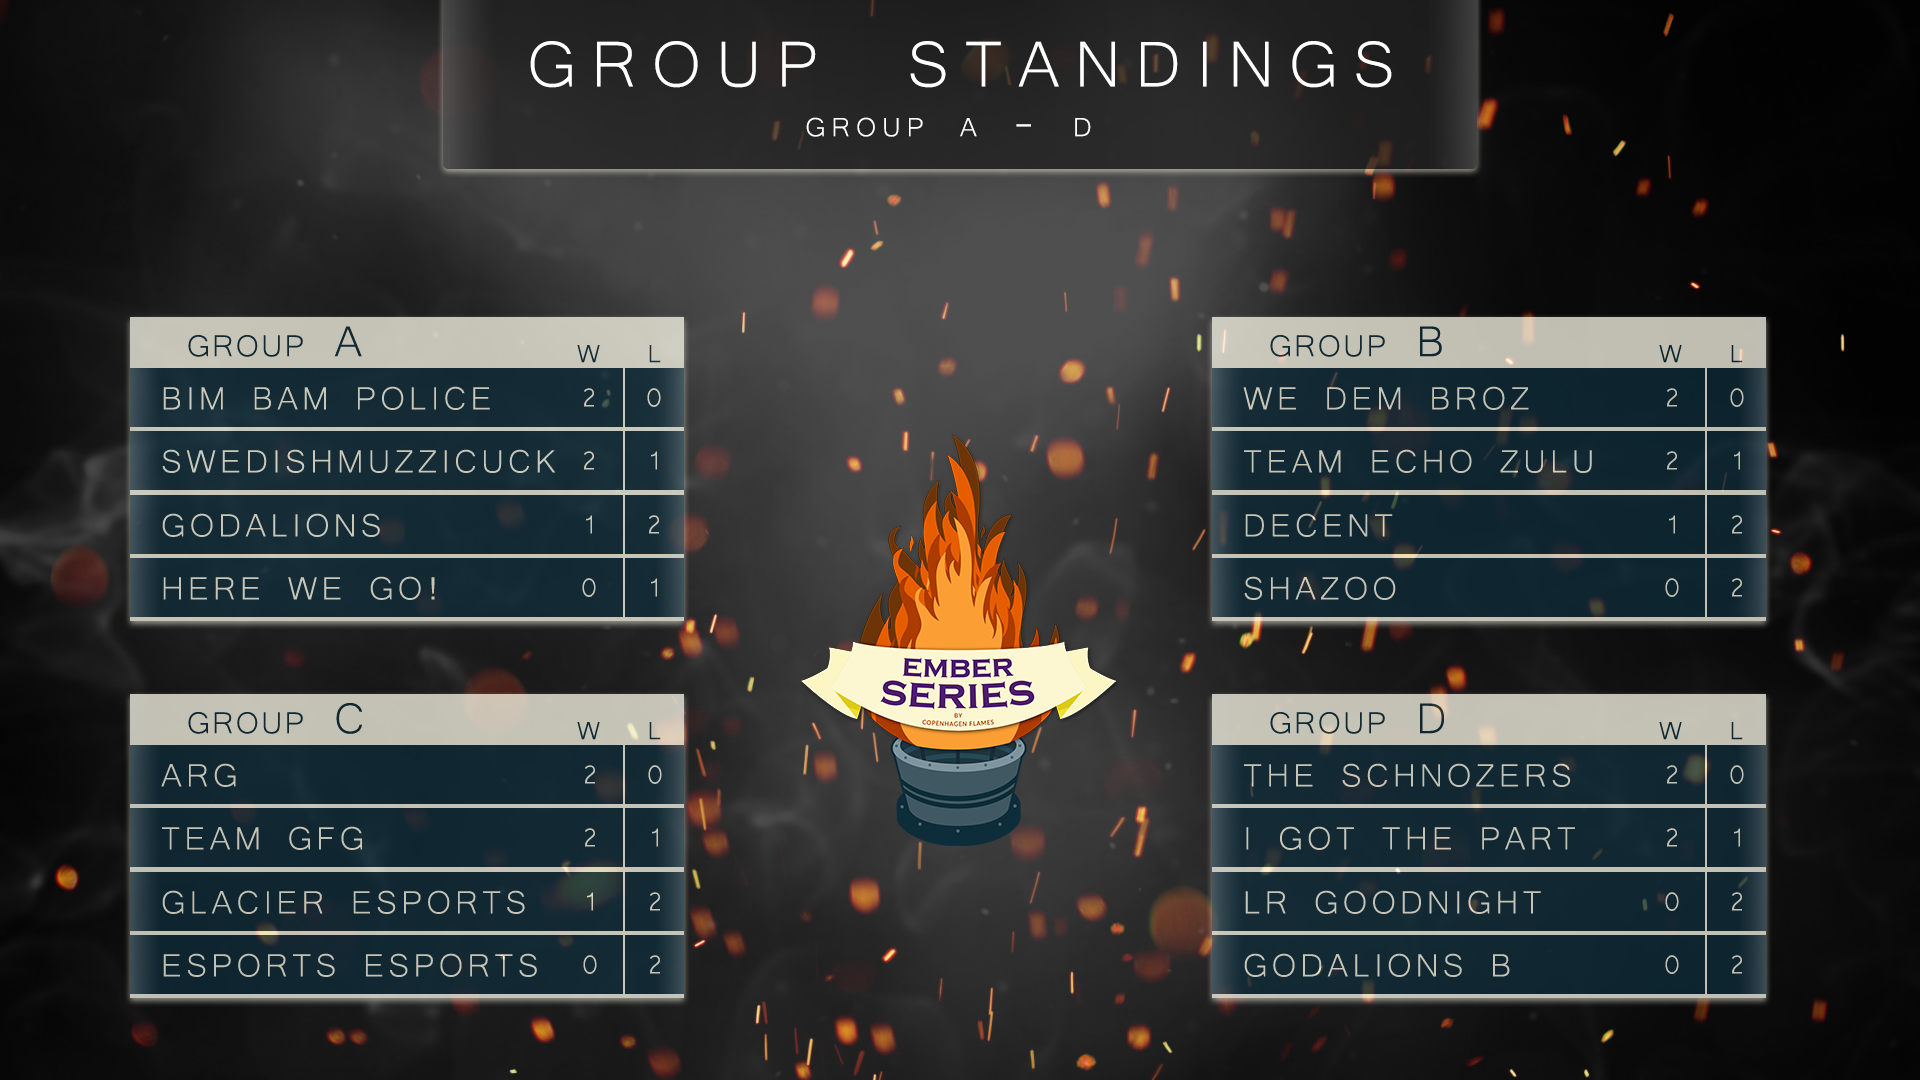 Group standings A-D